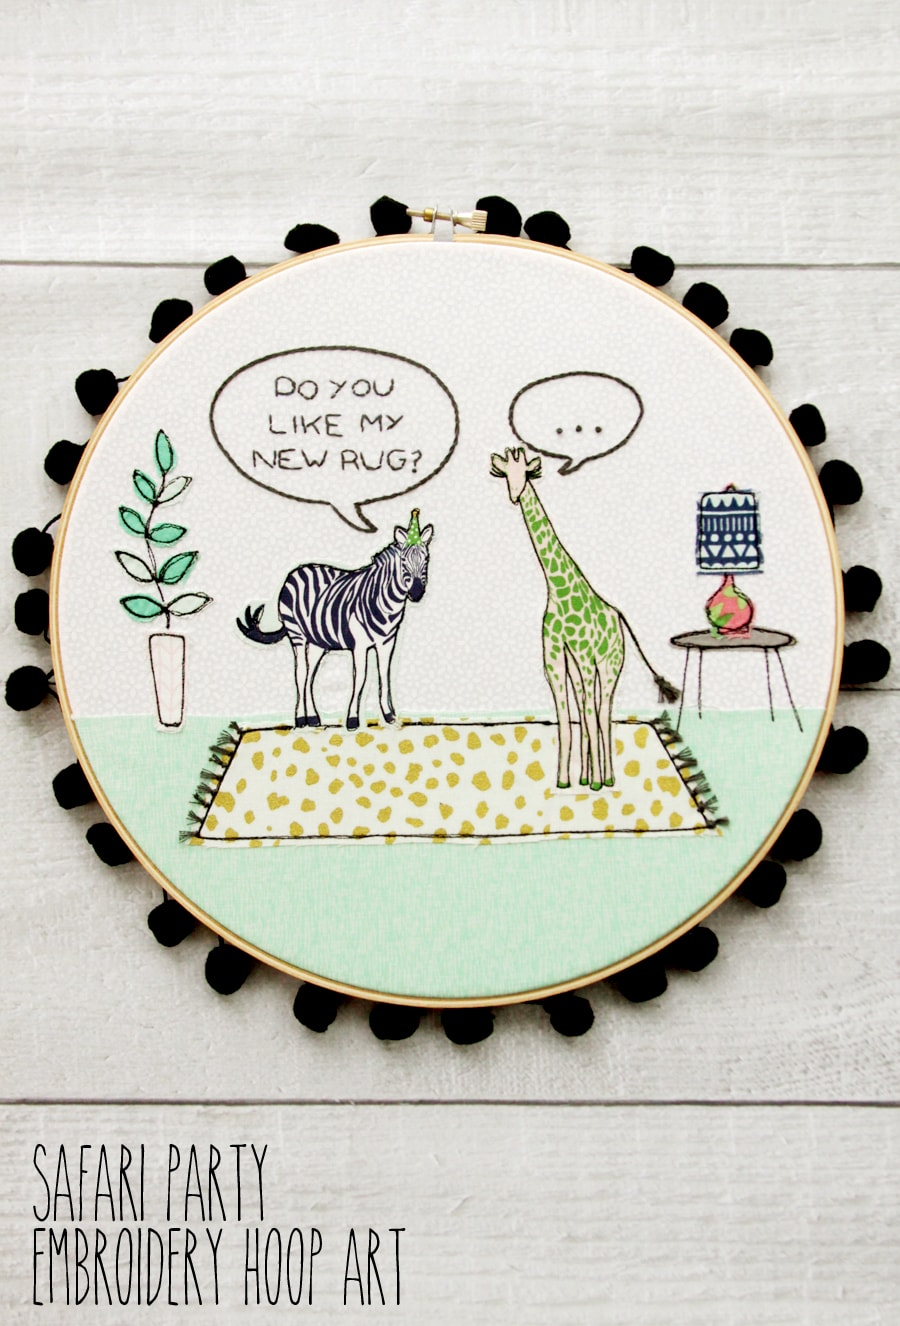 Safari Party Embroidery Hoop - free embroidery pattern and fun weekend sewing project